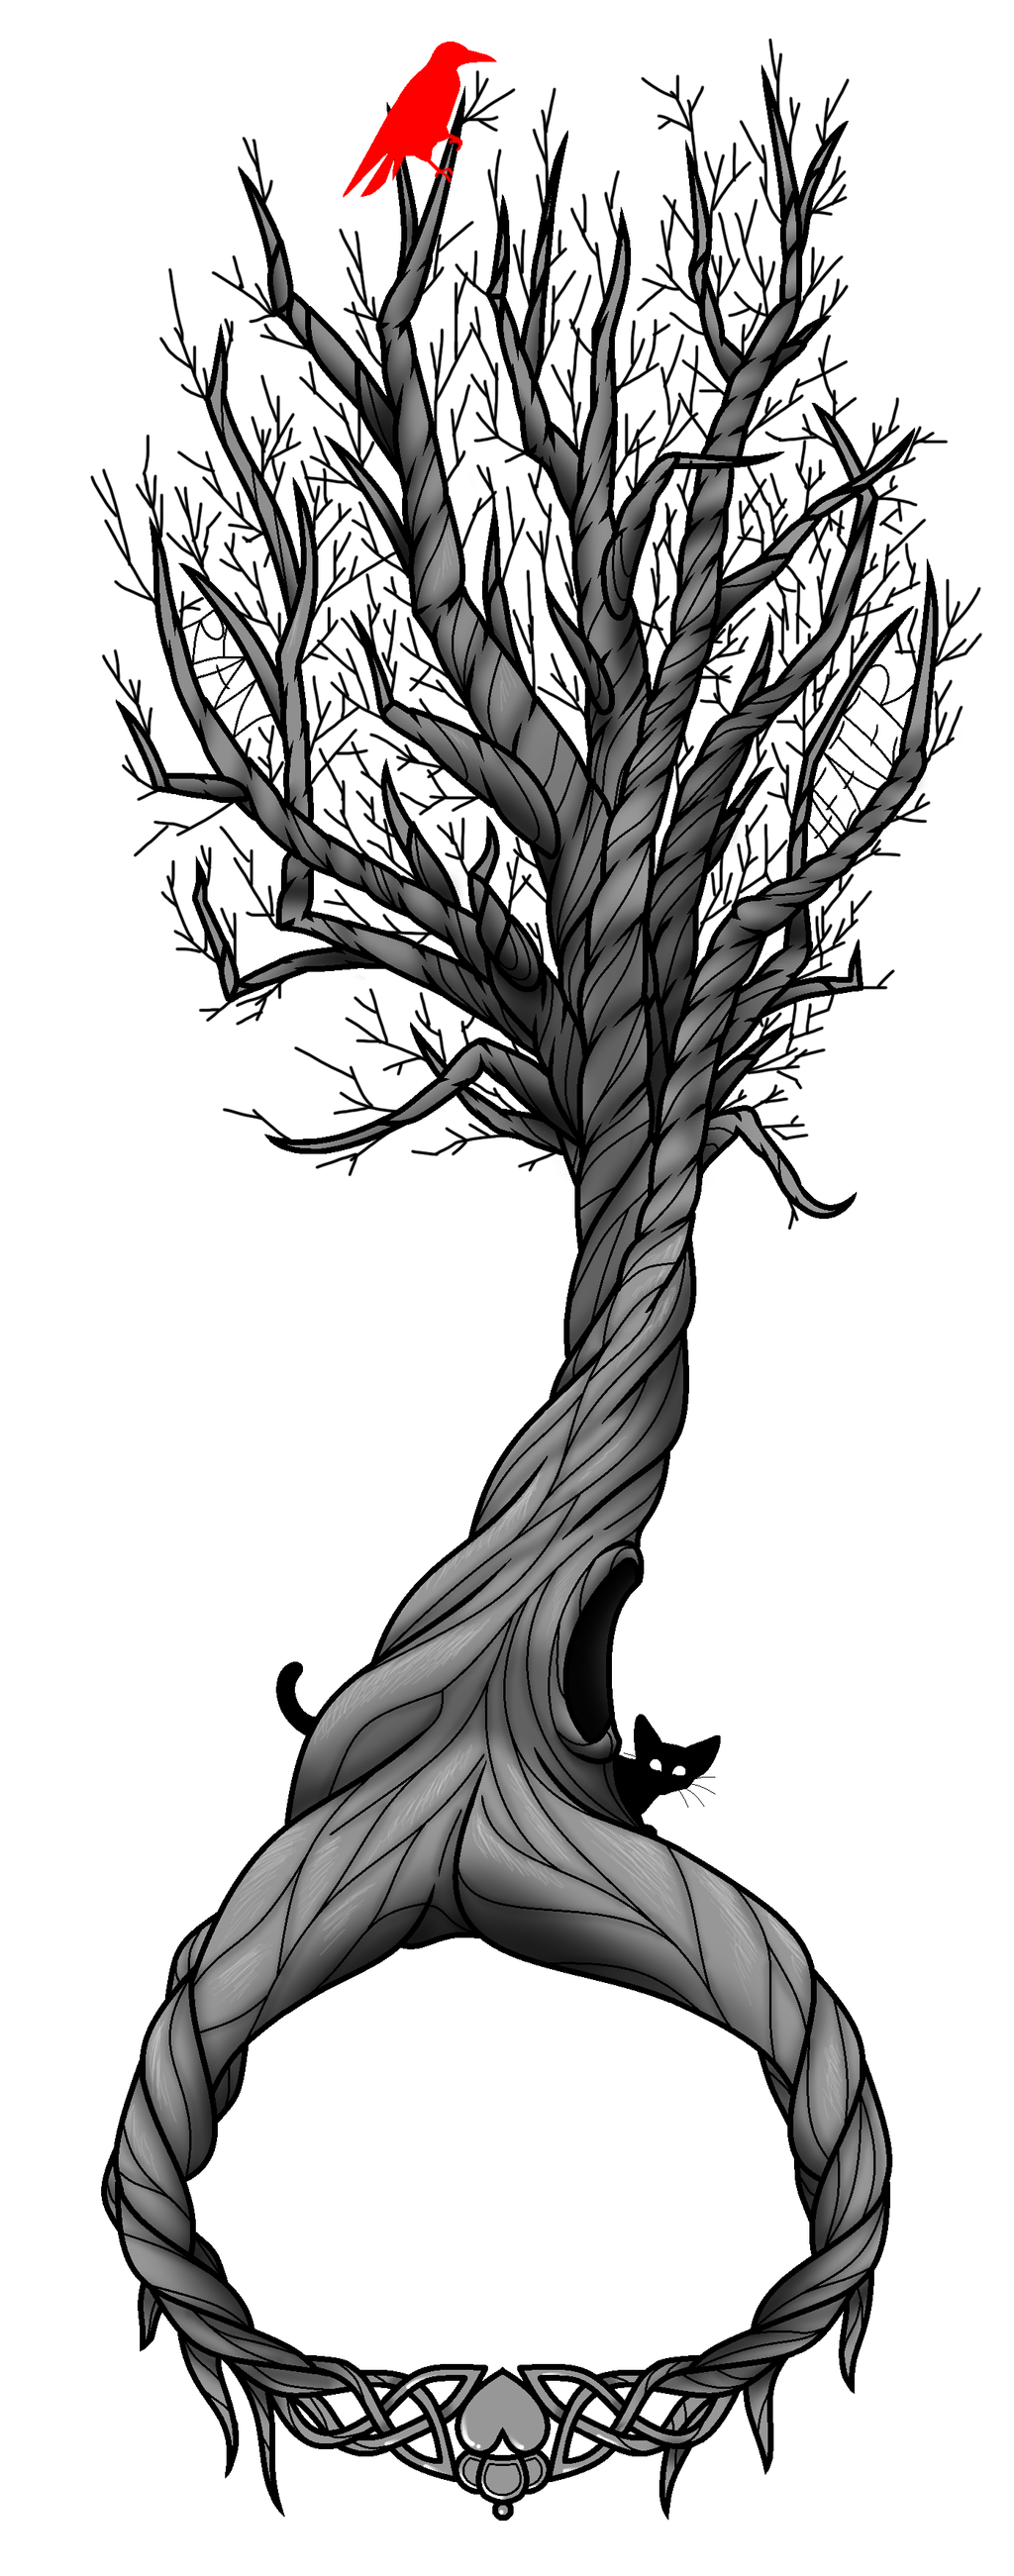 Tree Of Life Tattoo With Heart Roots: Tree Of Life Tattoo Design By Werewolf9595 On DeviantArt